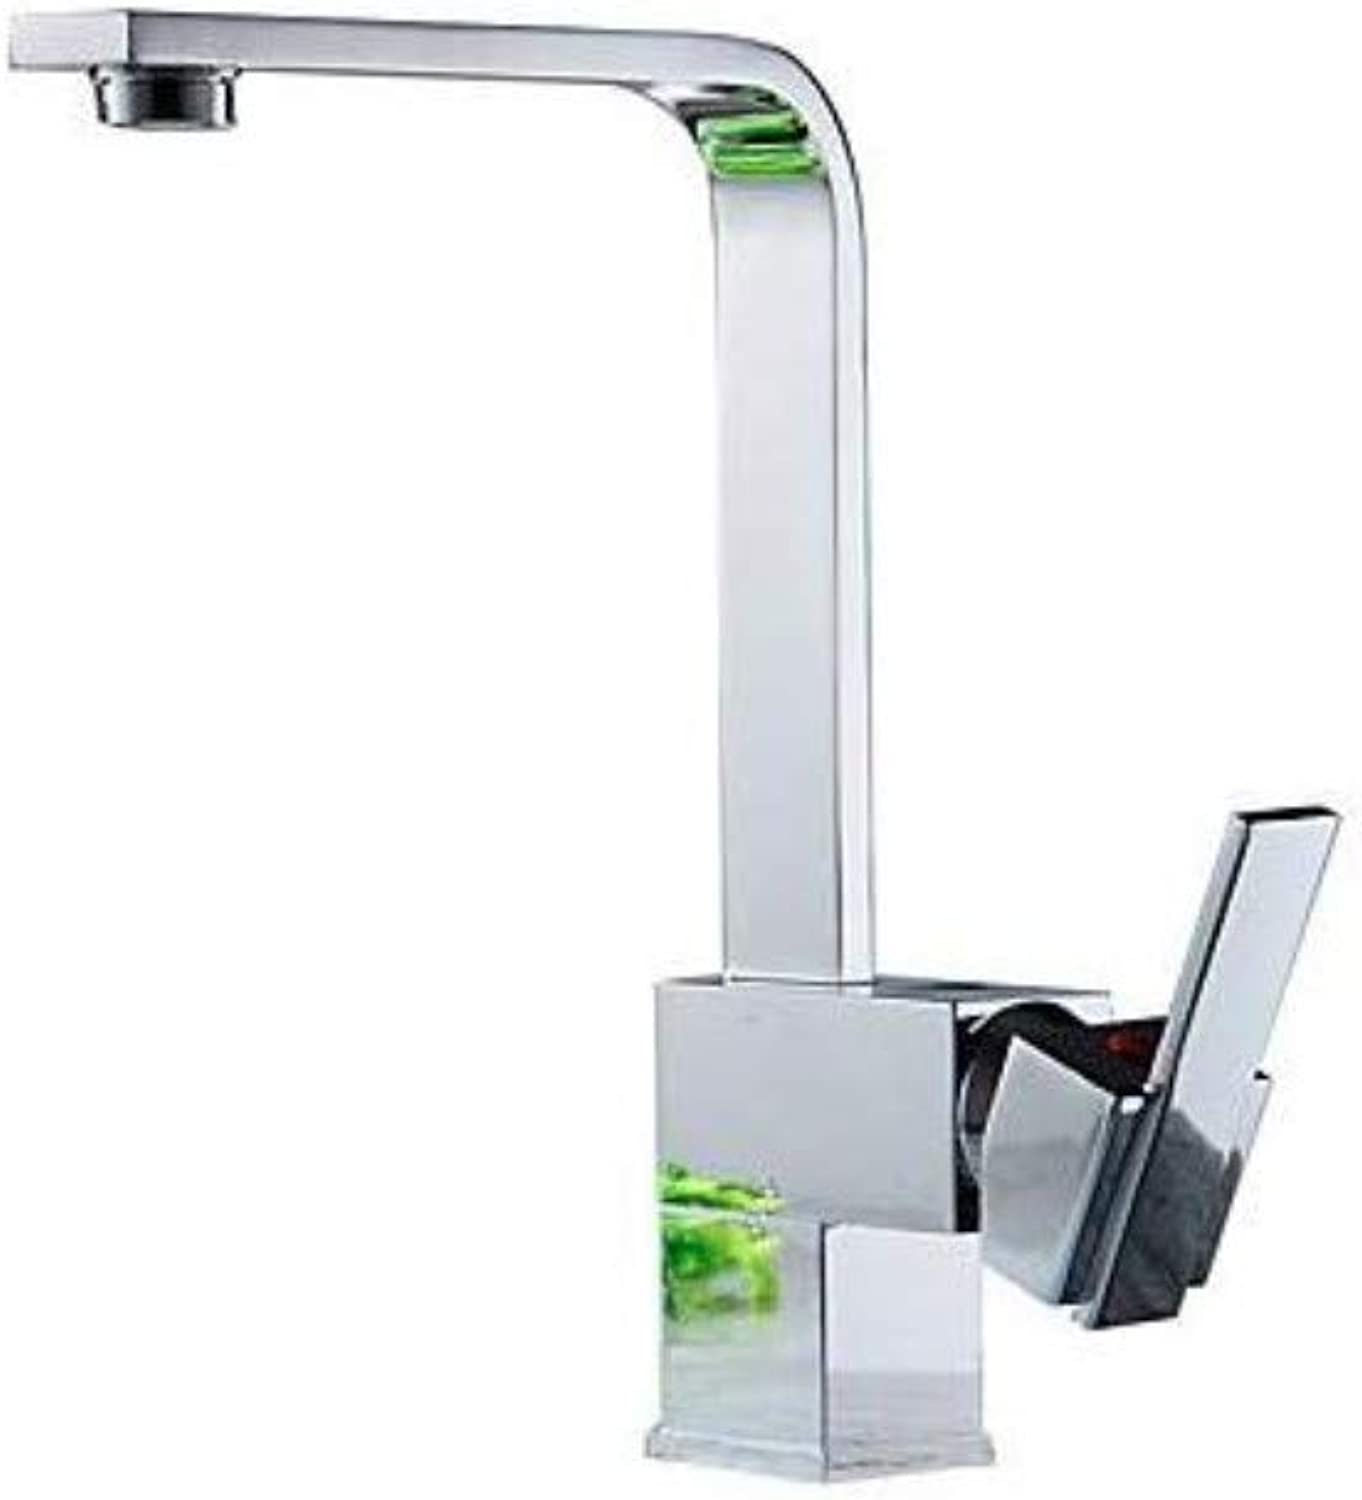 Taps Kitchen Sinkkitchen Faucet - Contemporary Nickel Polished Ceramic Valve